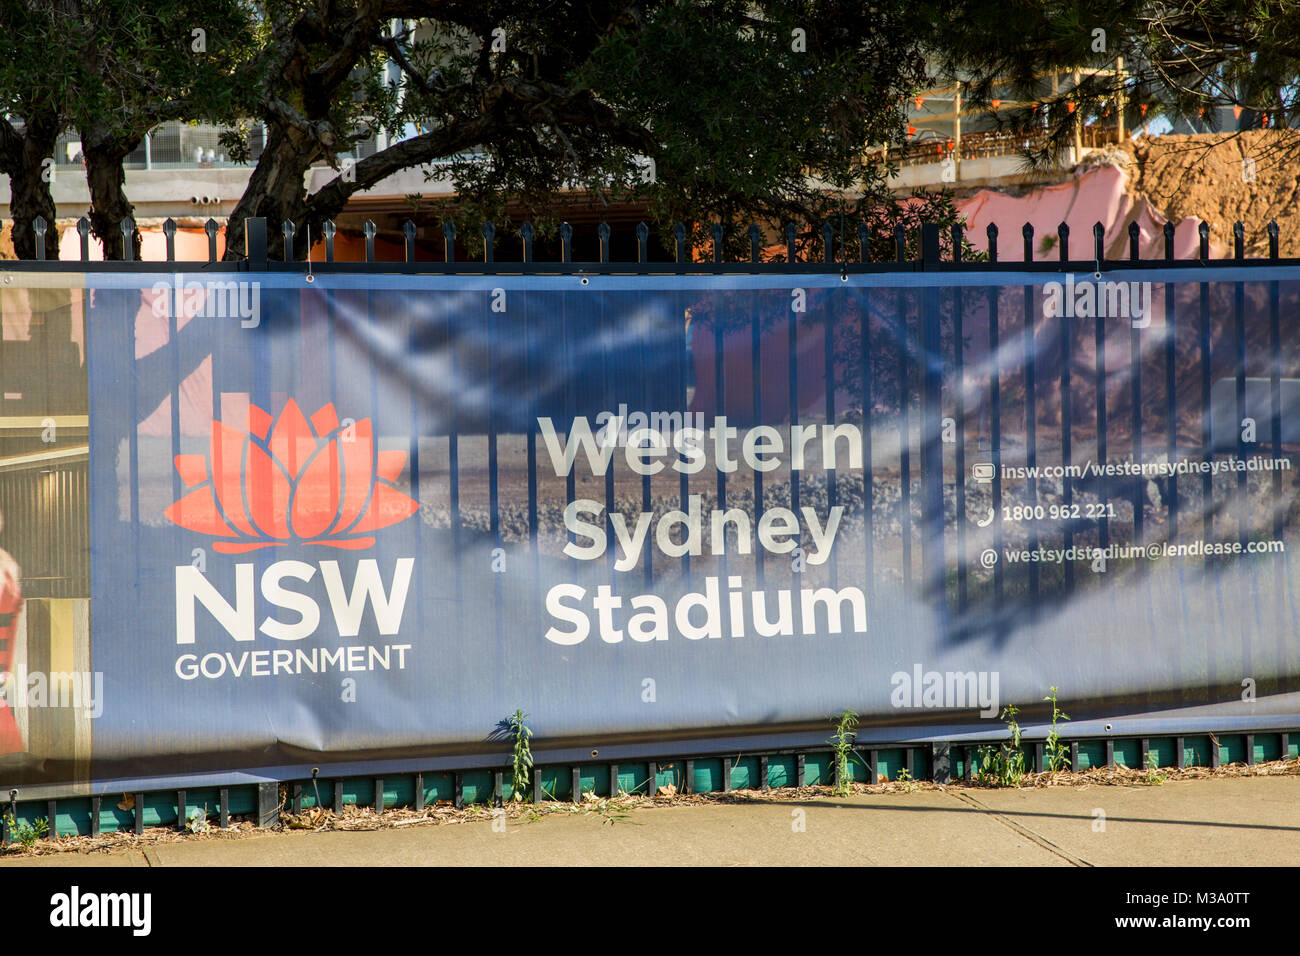 The New South Wales government is building a new Western Sydney sports stadium in Parramatta, Sydney,Australia - Stock Image